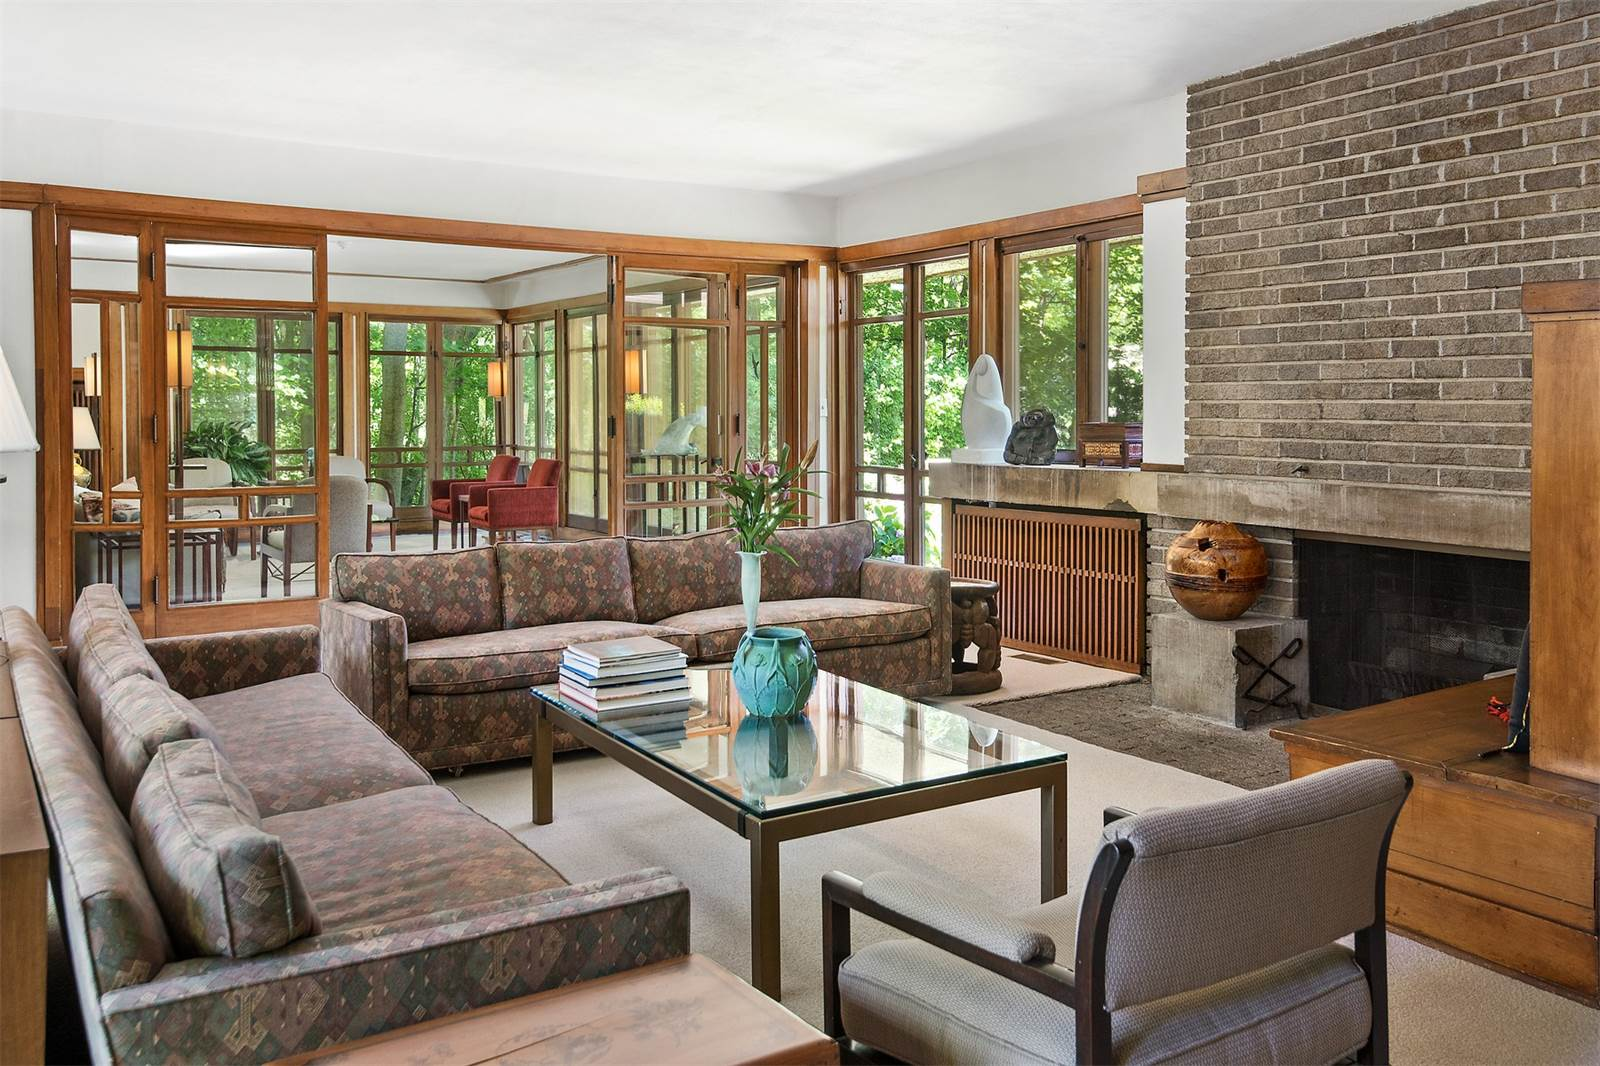 frank lloyd wright homes for sale around chicago curbed chicago